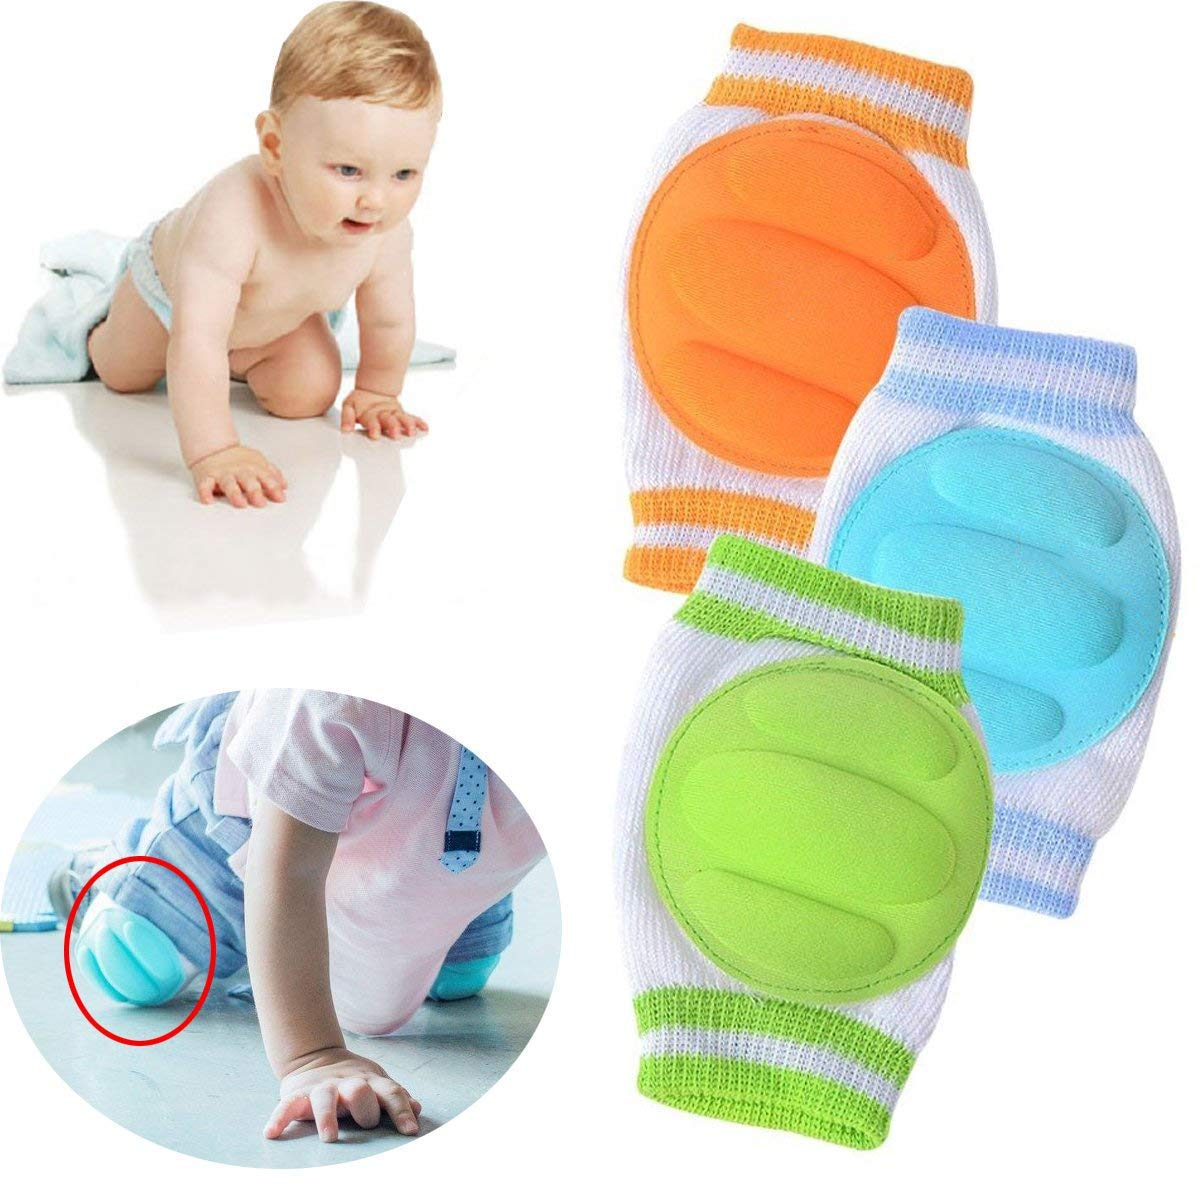 3 Pairs Baby Knee Pads for Crawling - Adjustable Breathable Waterproof Safety Protector, Anti-Slip Elastic Knee Elbow Pads Cushion Leg Warmers for Babies, Toddlers, Infants, Boys, Girls, Kids